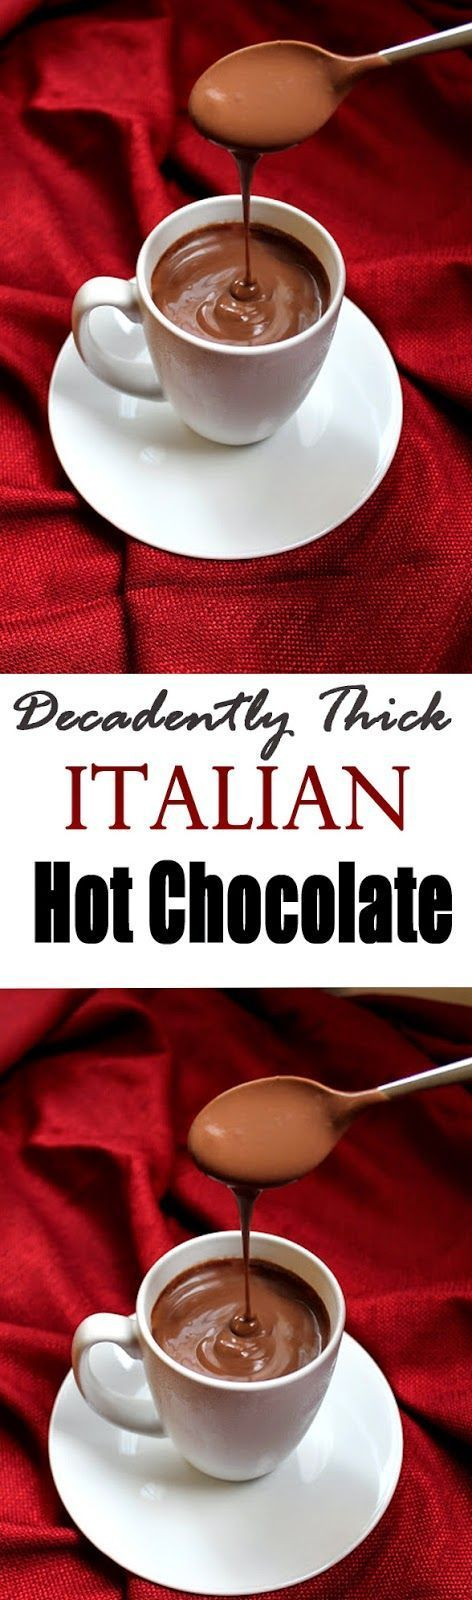 10+ BEST DECADENT HOT CHOCOLATE RECIPES